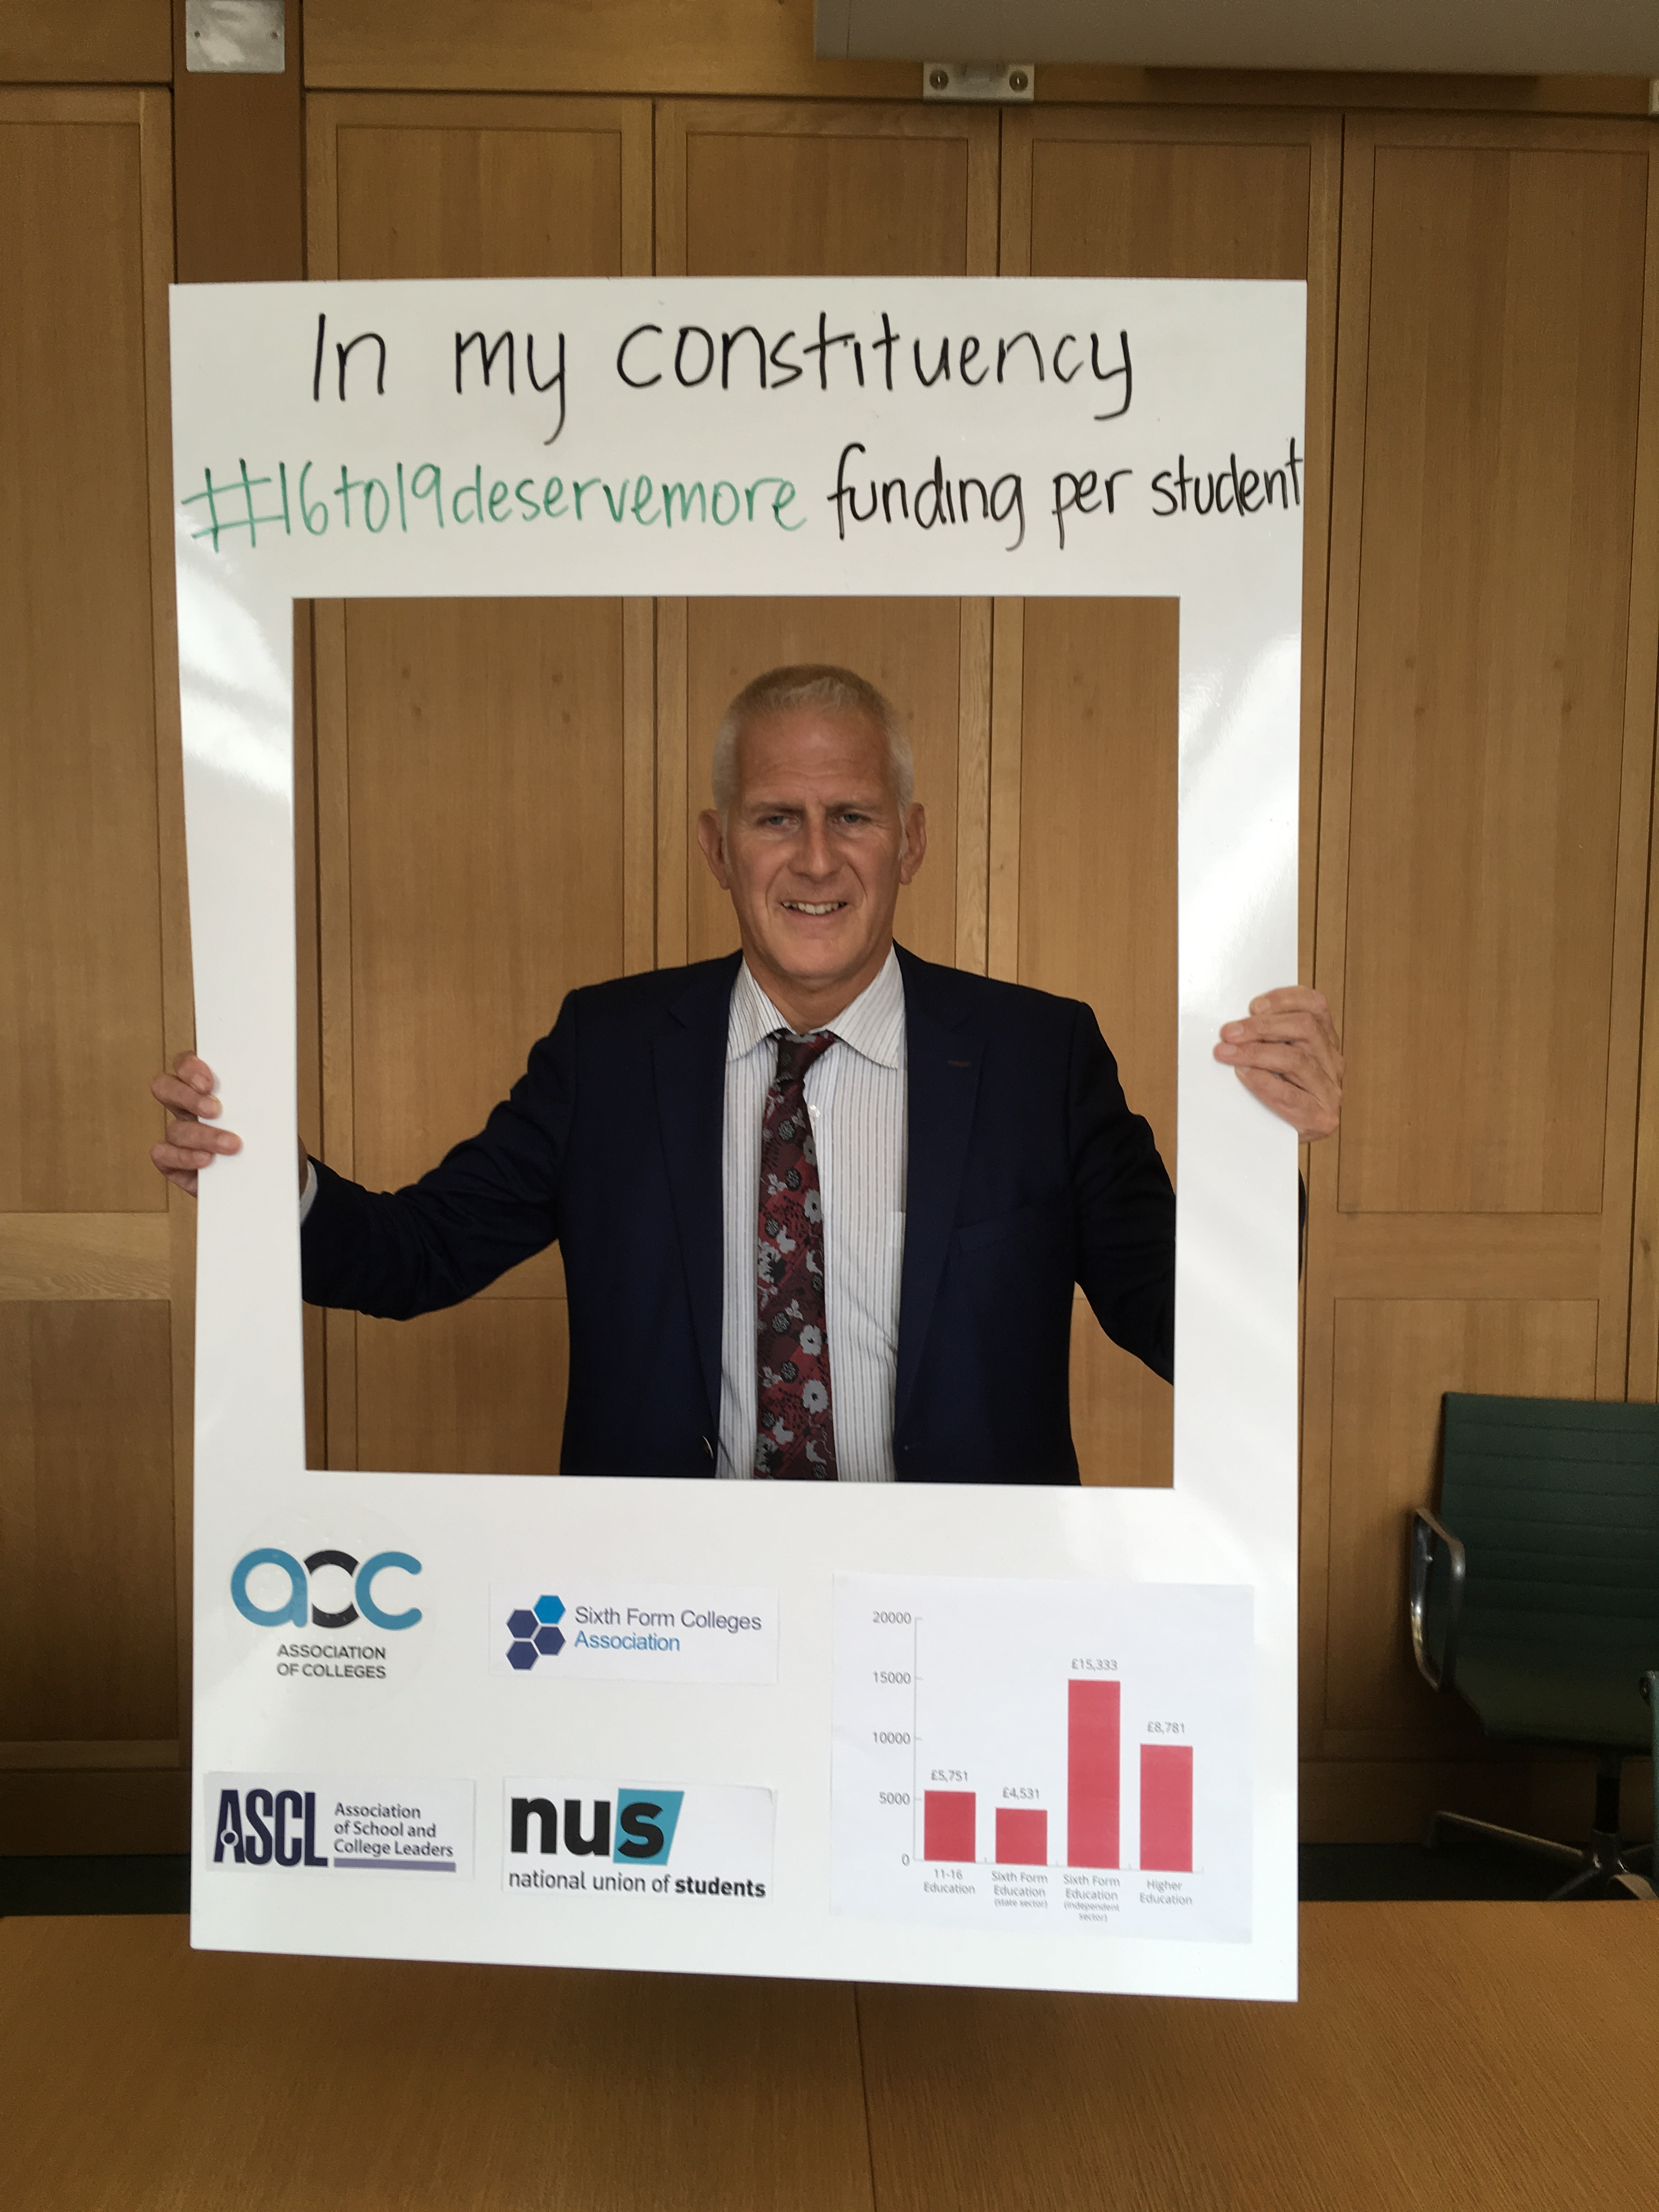 Gordon_backing_the_16-19_funding_campaign_at_Westminster.jpg